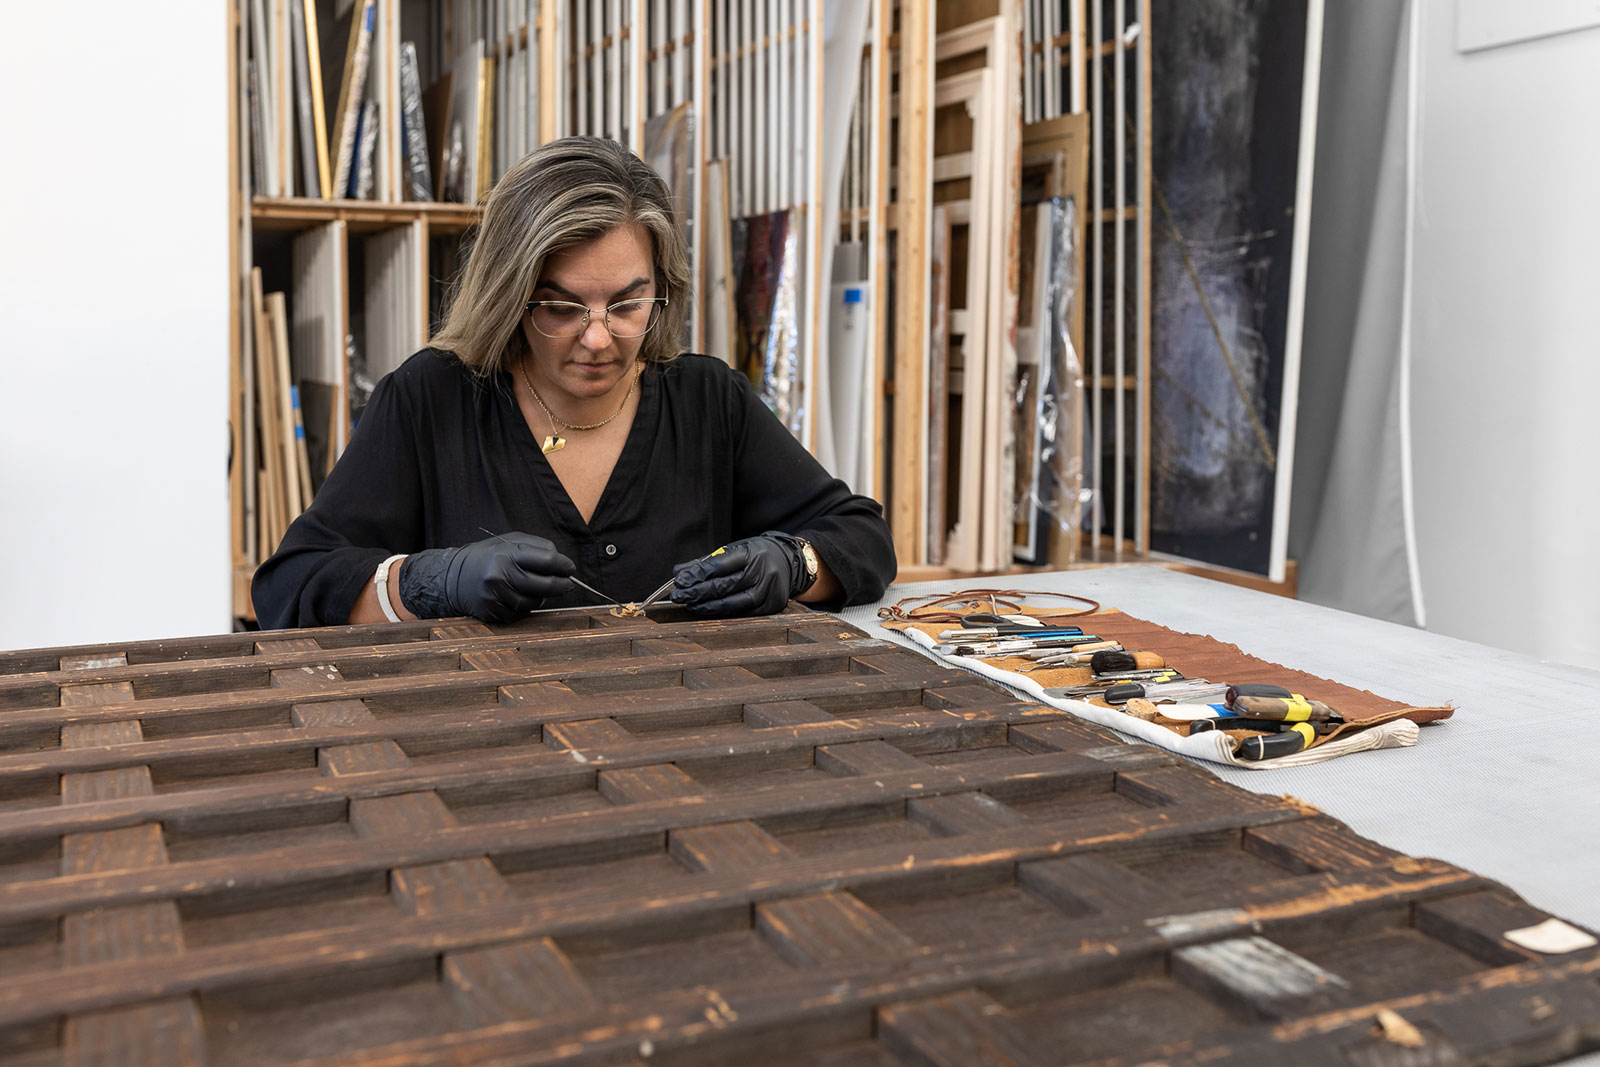 Chief Conservator and Partner, Veronica Romero, performs conservation treatment